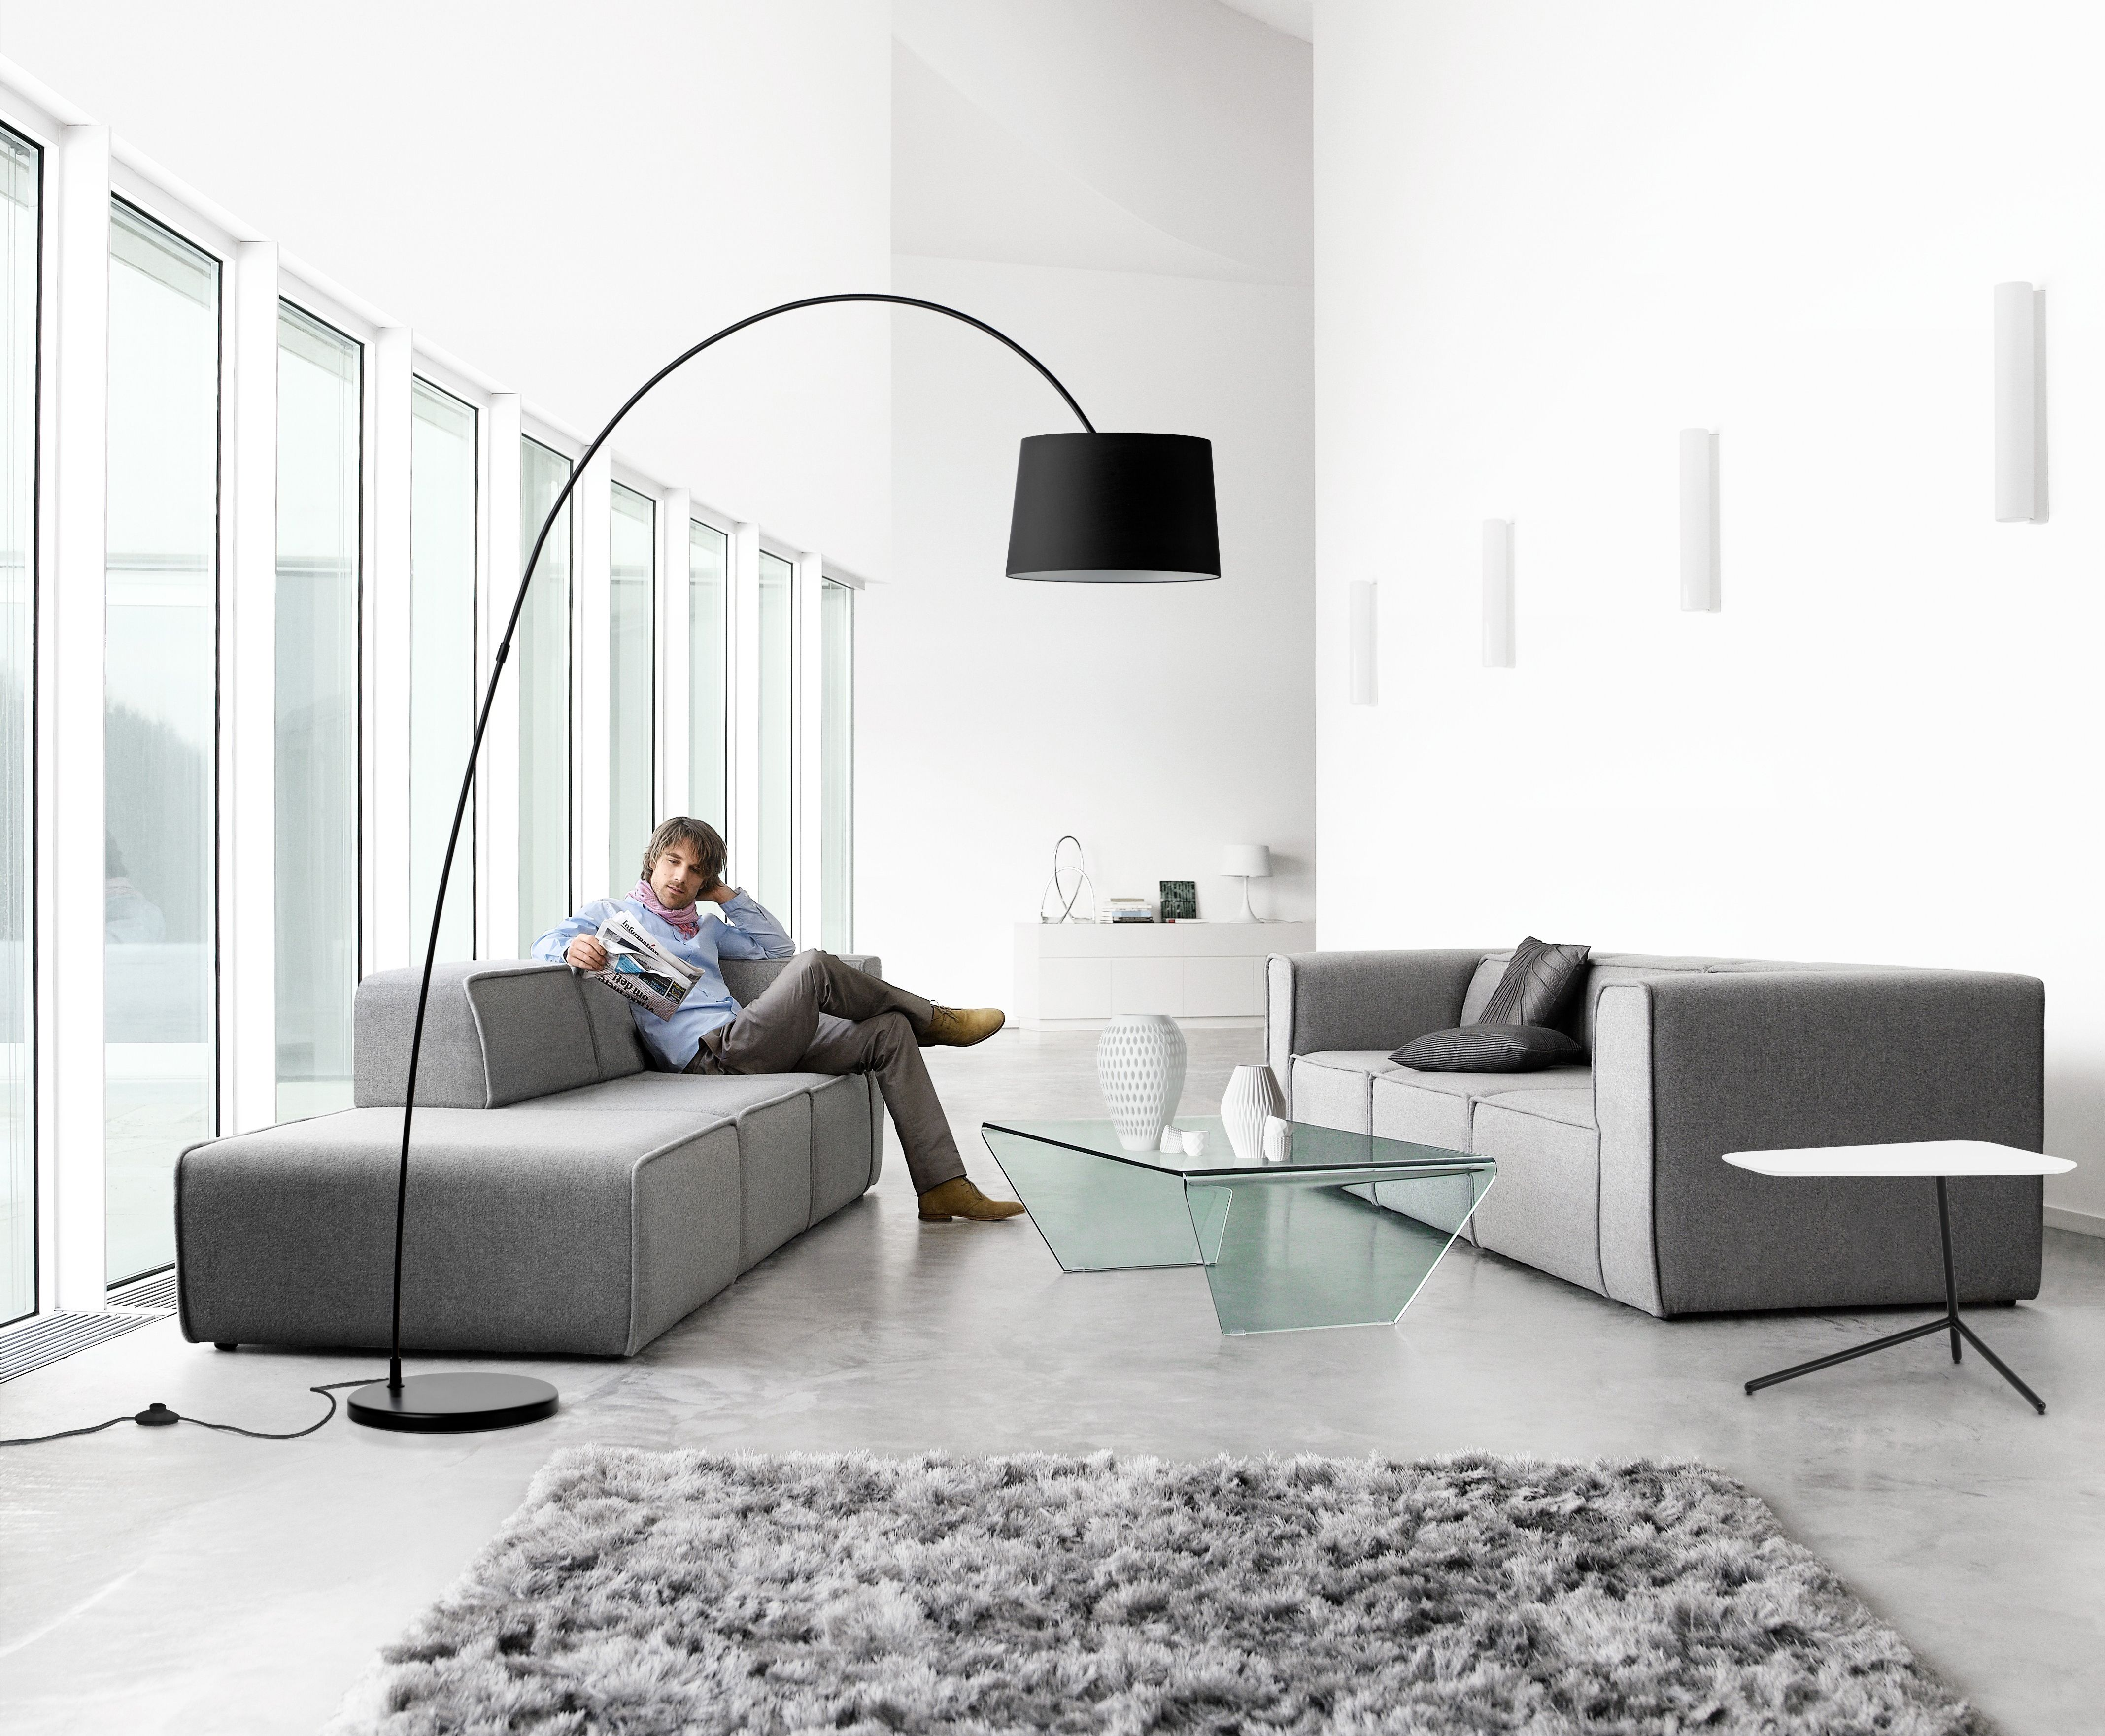 Carmo Sofa Kuta Lamp Neat Rug Adria Glass Coffee Table All Products Available In Different Materials Interior Decorating Living Room Furniture Boconcept